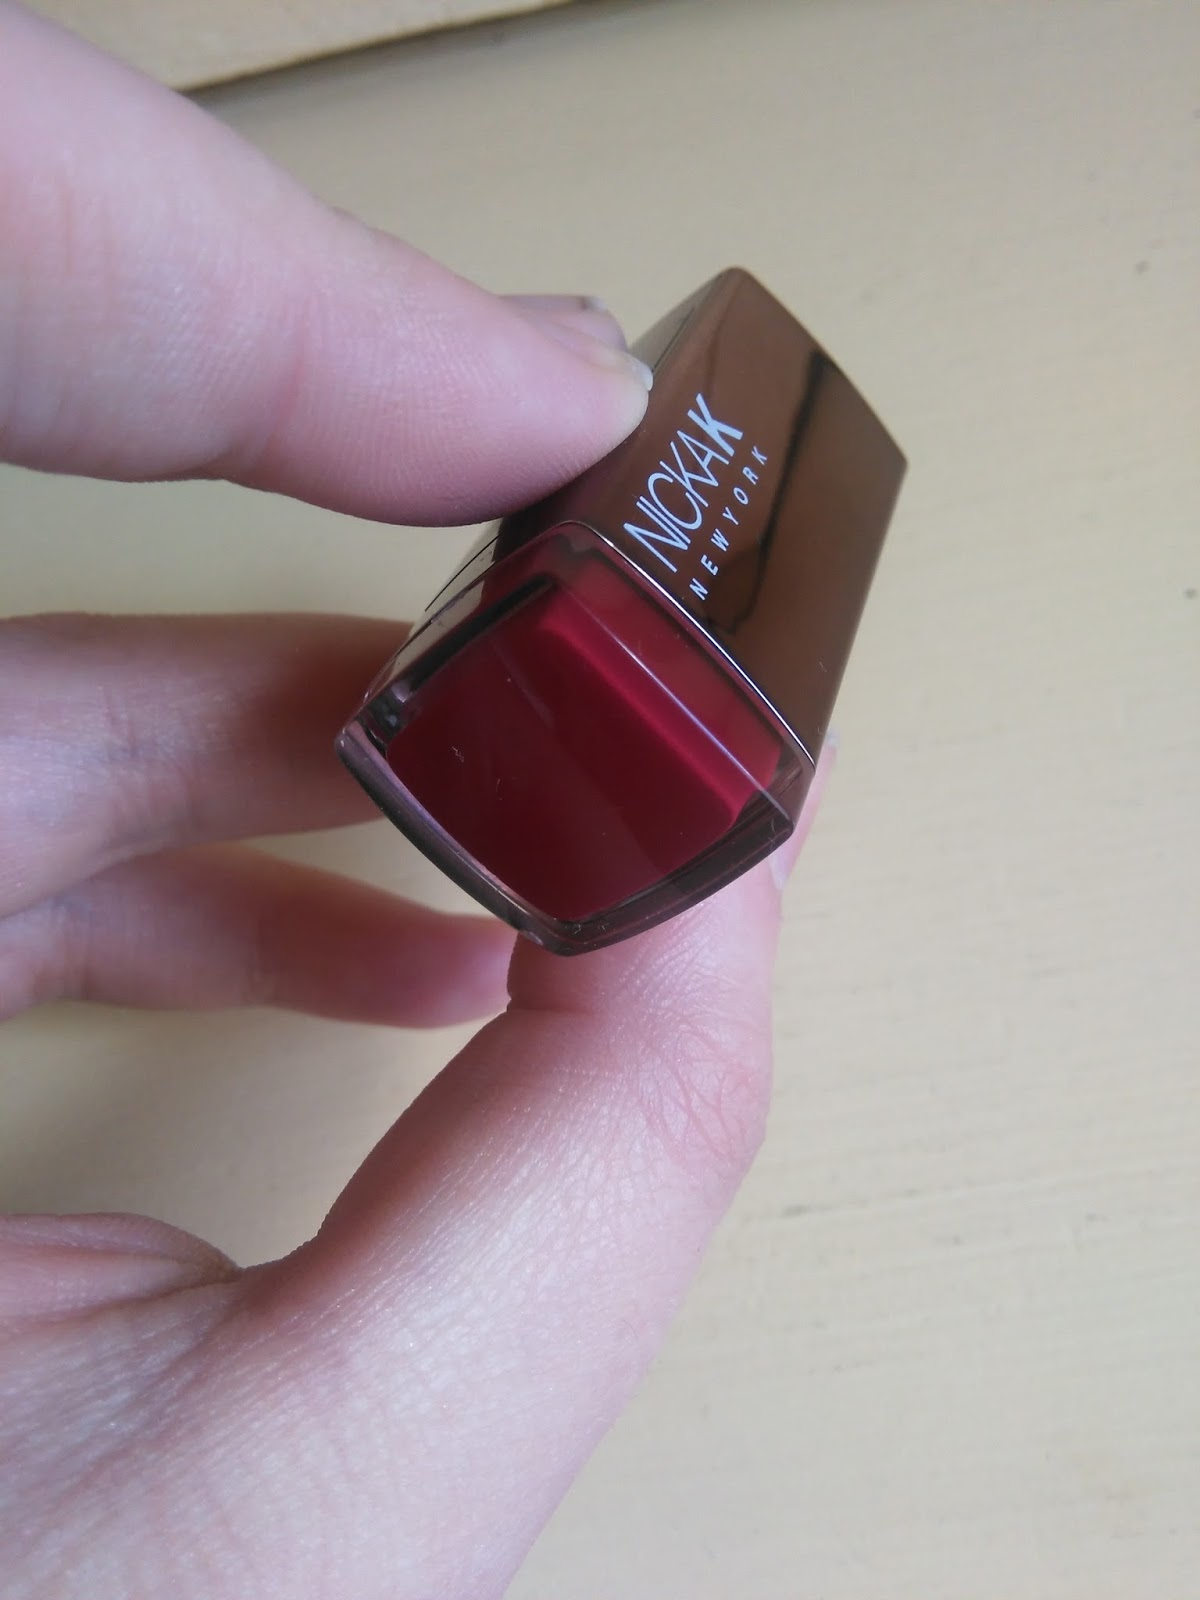 Beauty Crowd Review - Nicka K lipstick and Absolute Shimmer Eyeliner ...